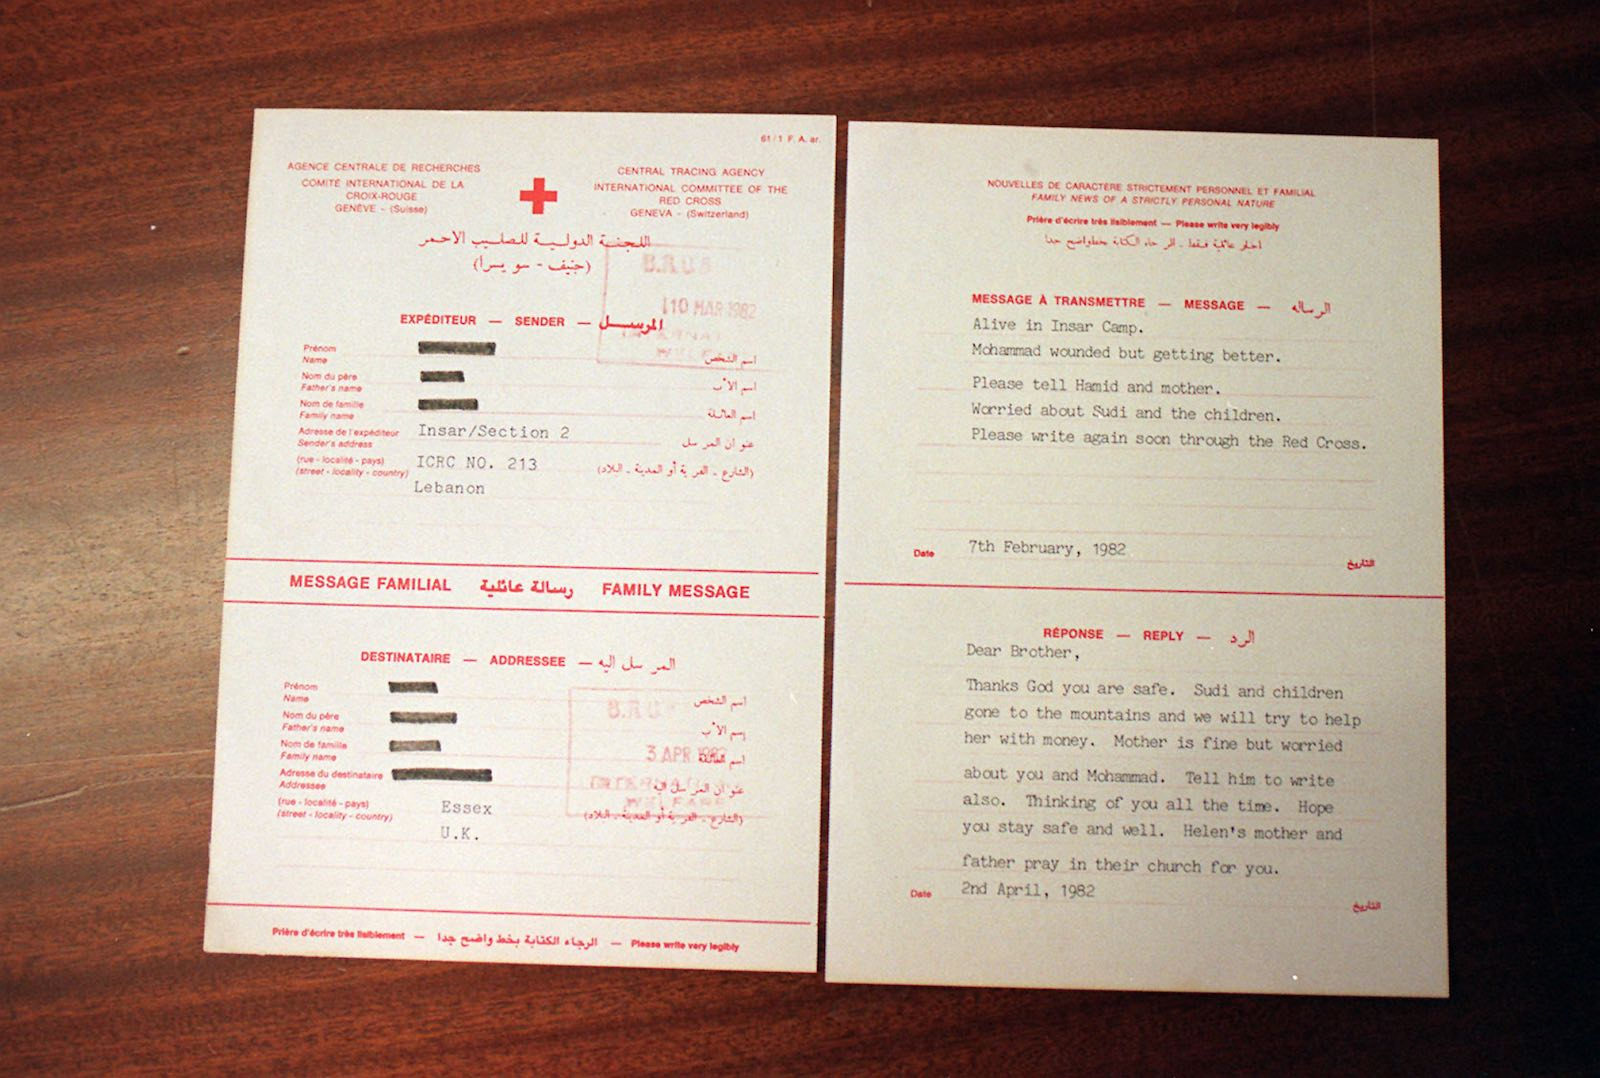 Message forms for the protection of POWs under the Geneva Conventions (Photo: Michael Stephens via Getty)